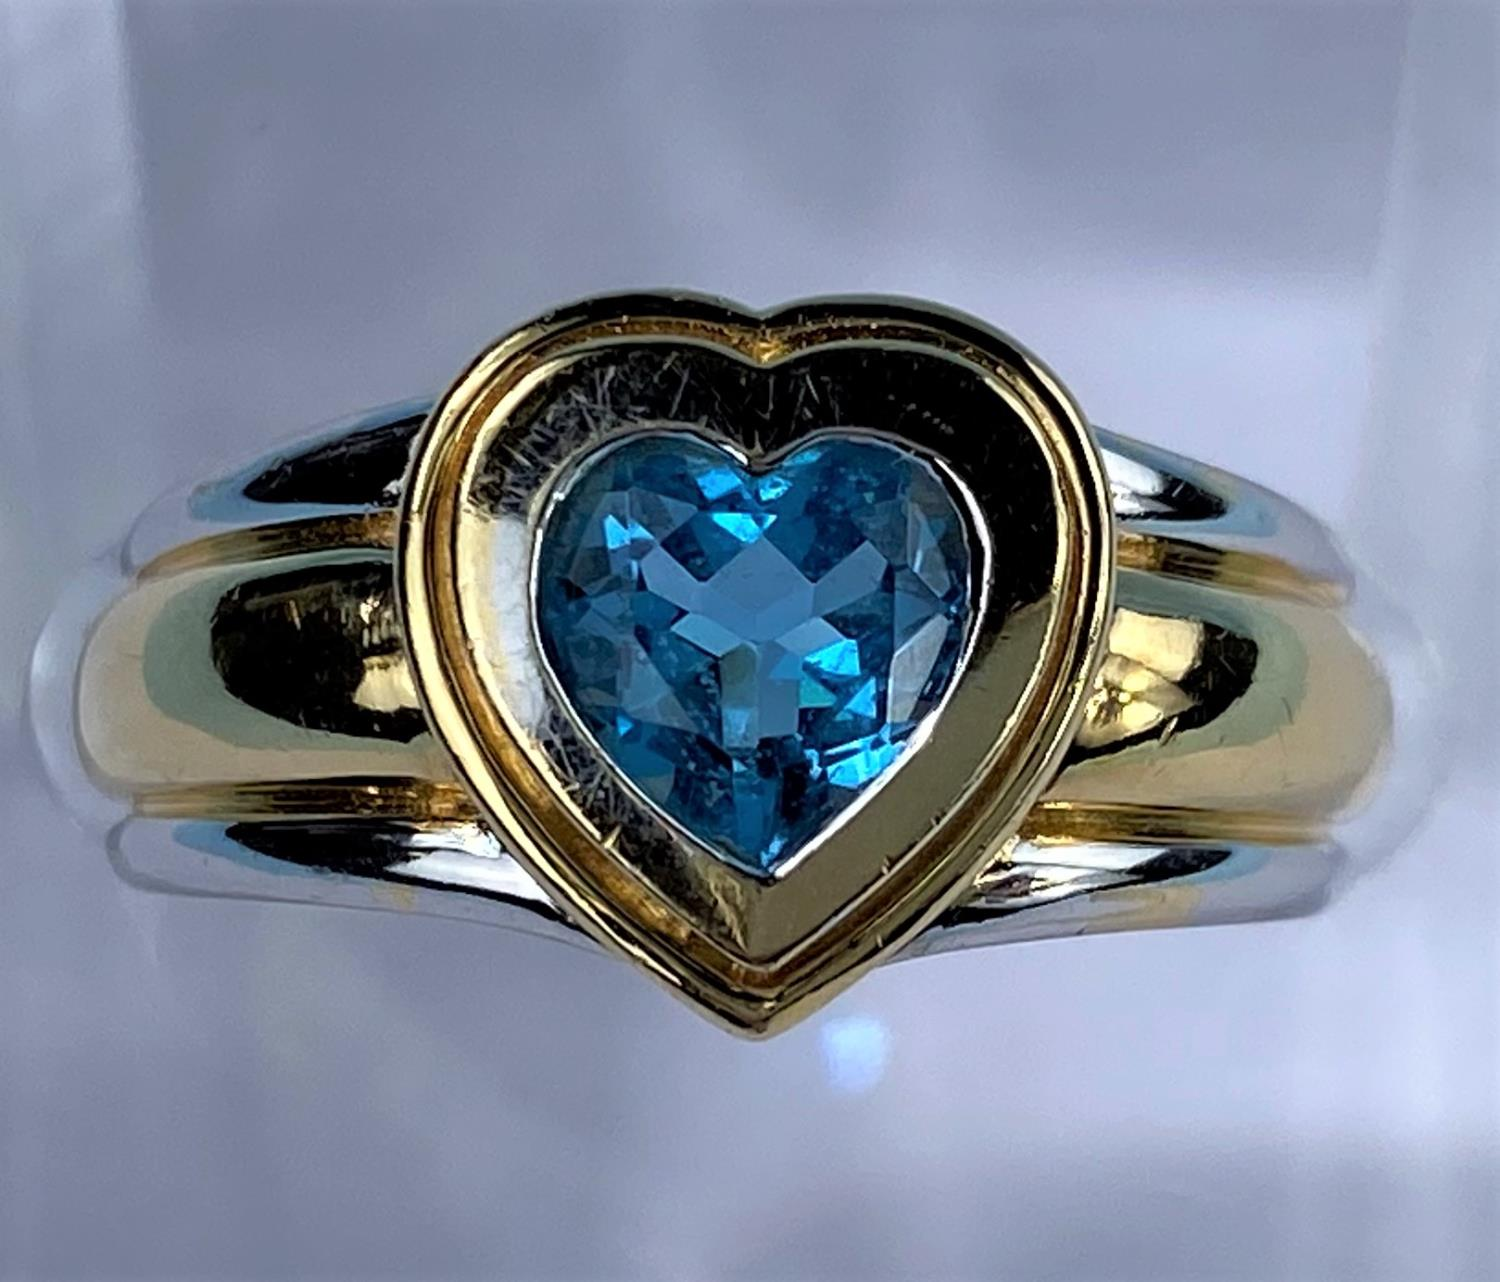 A lady's 18ct hallmarked two tone gold dress ring on a broad shank and blue stone in heart - Image 3 of 6